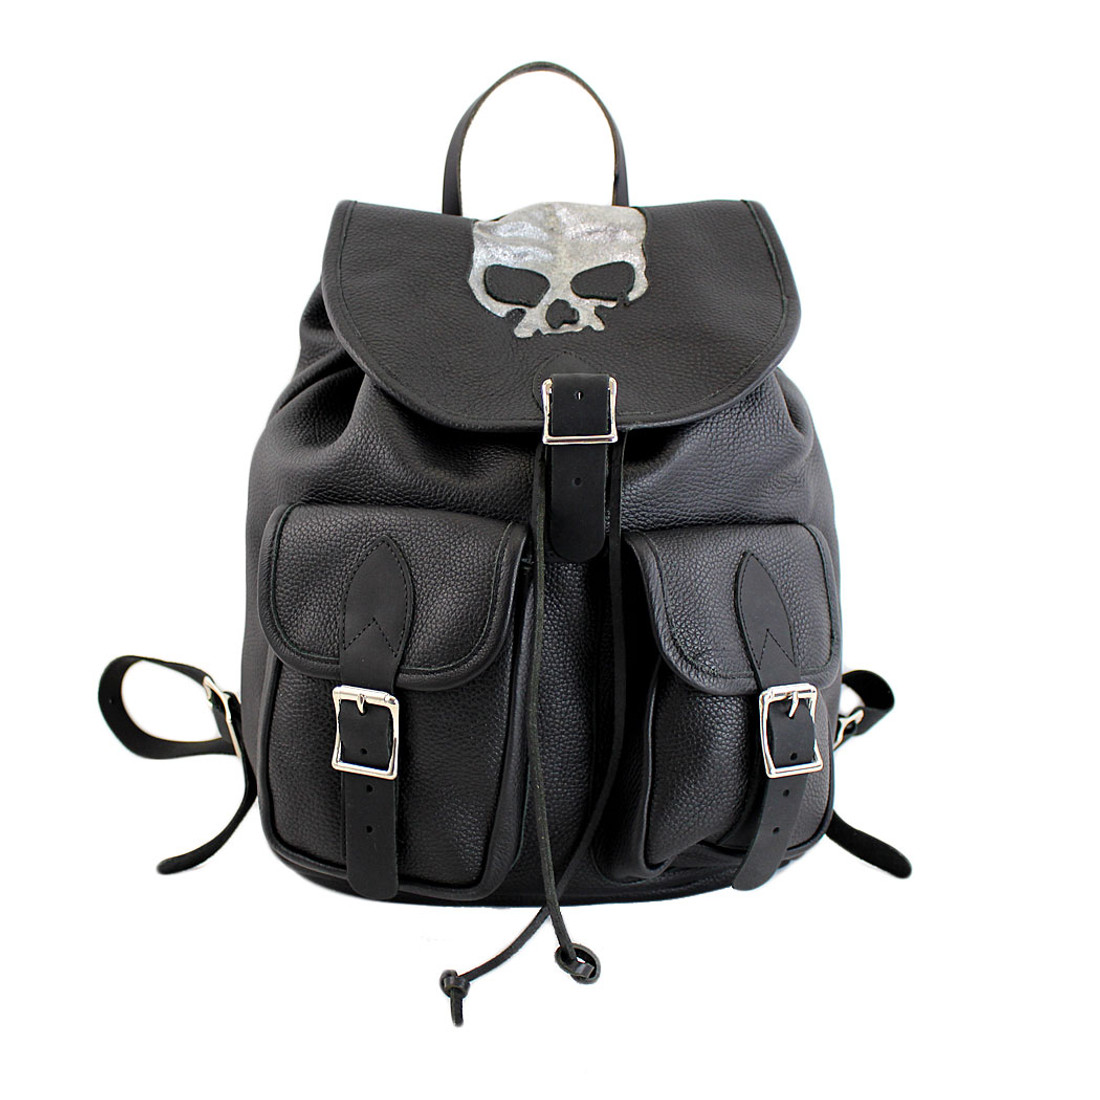 Frontside of Black Leather Backpack Travel Bag with Metallic Silver Skull